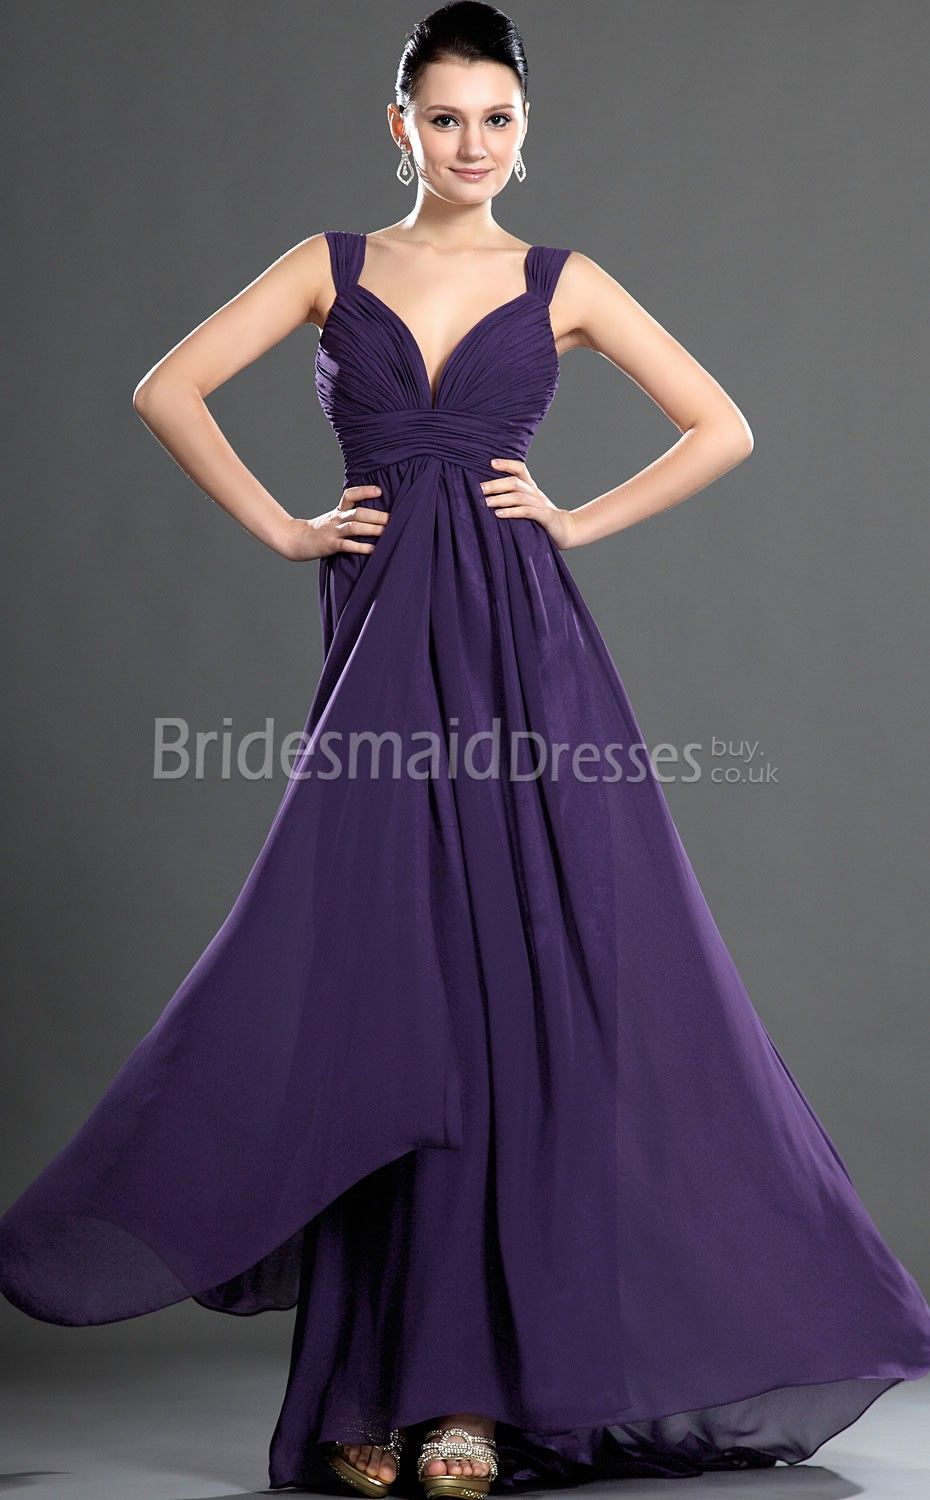 purple bridesmaid dresses just add a belt of bling!!! | Planning for ...